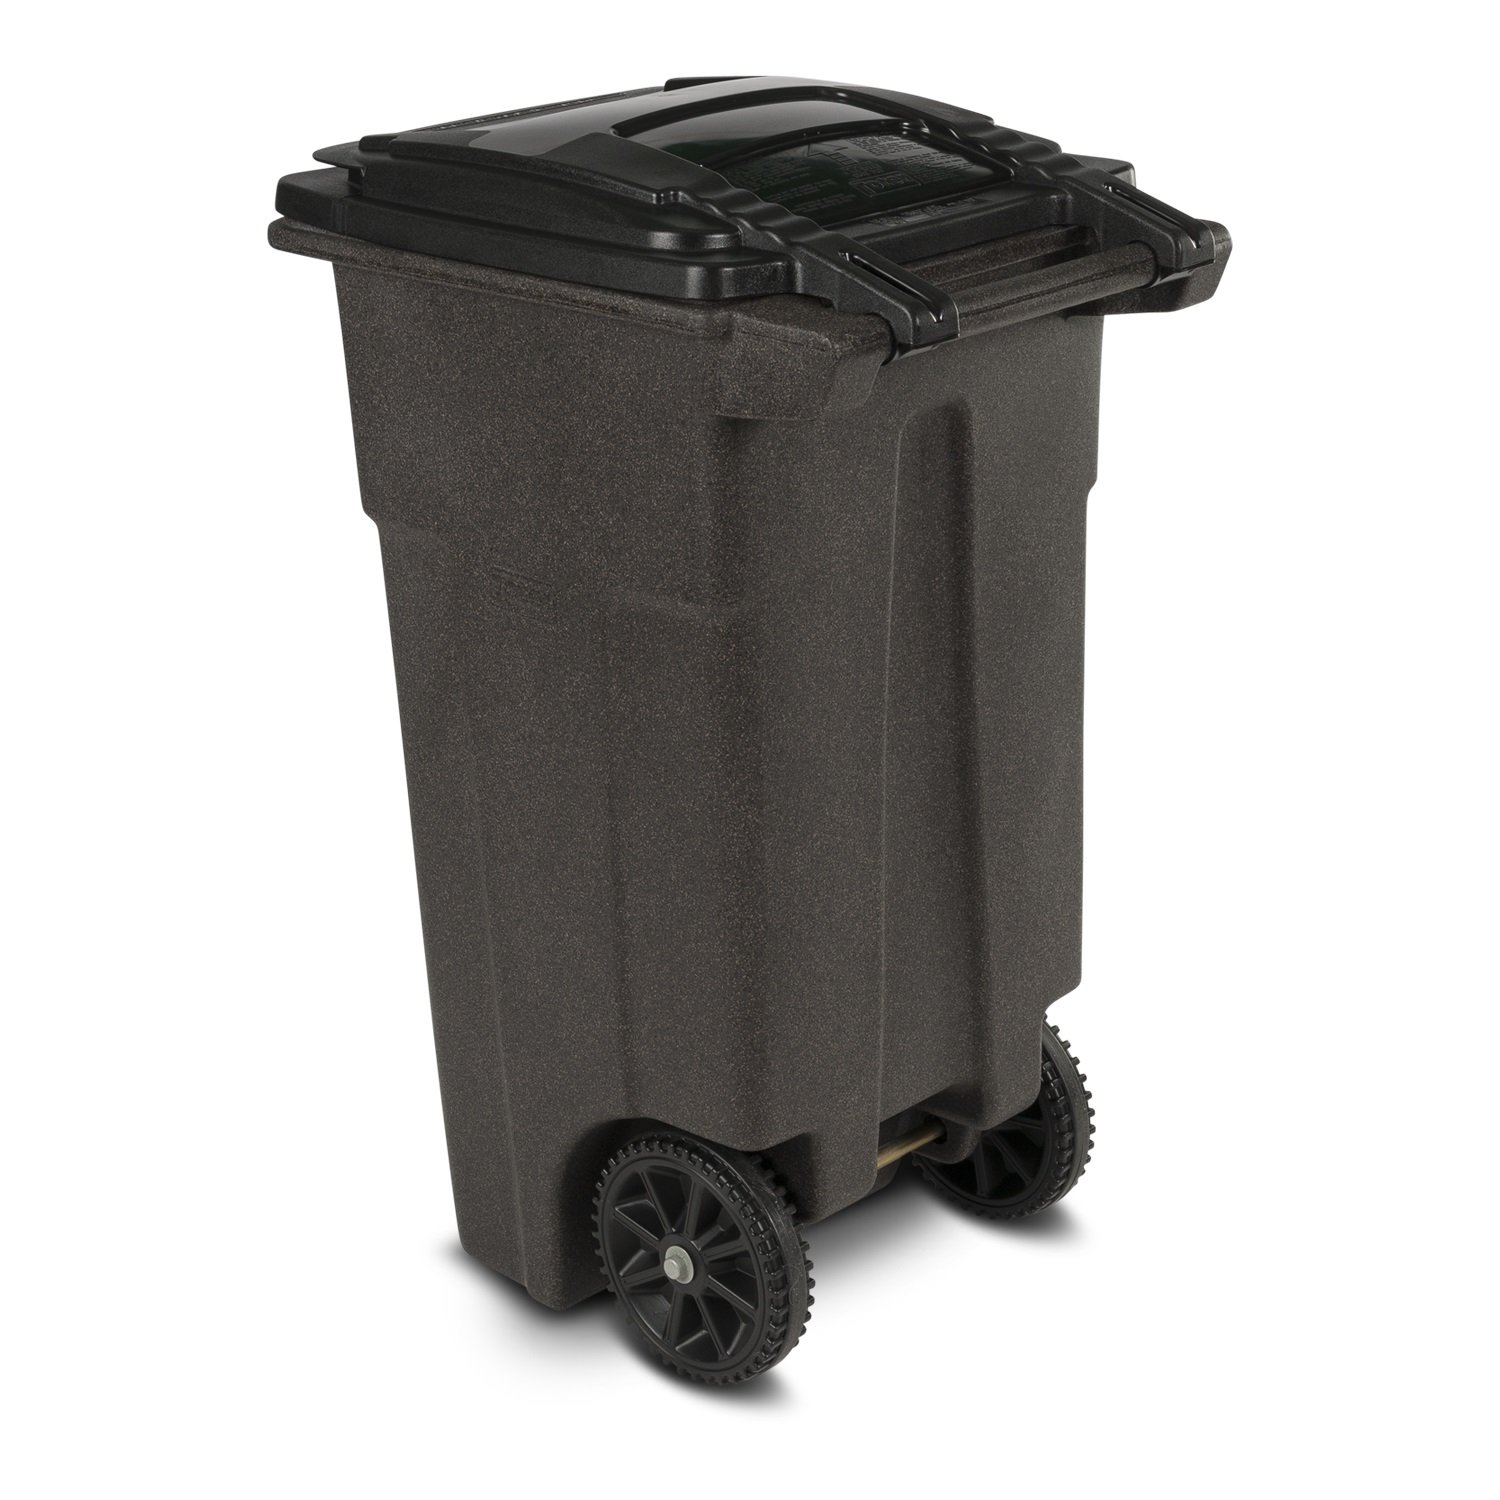 32-Gallon Blackstone Toter 025532-R1209 Residential Heavy Duty Two Wheeled Trash Can with Attached Lid